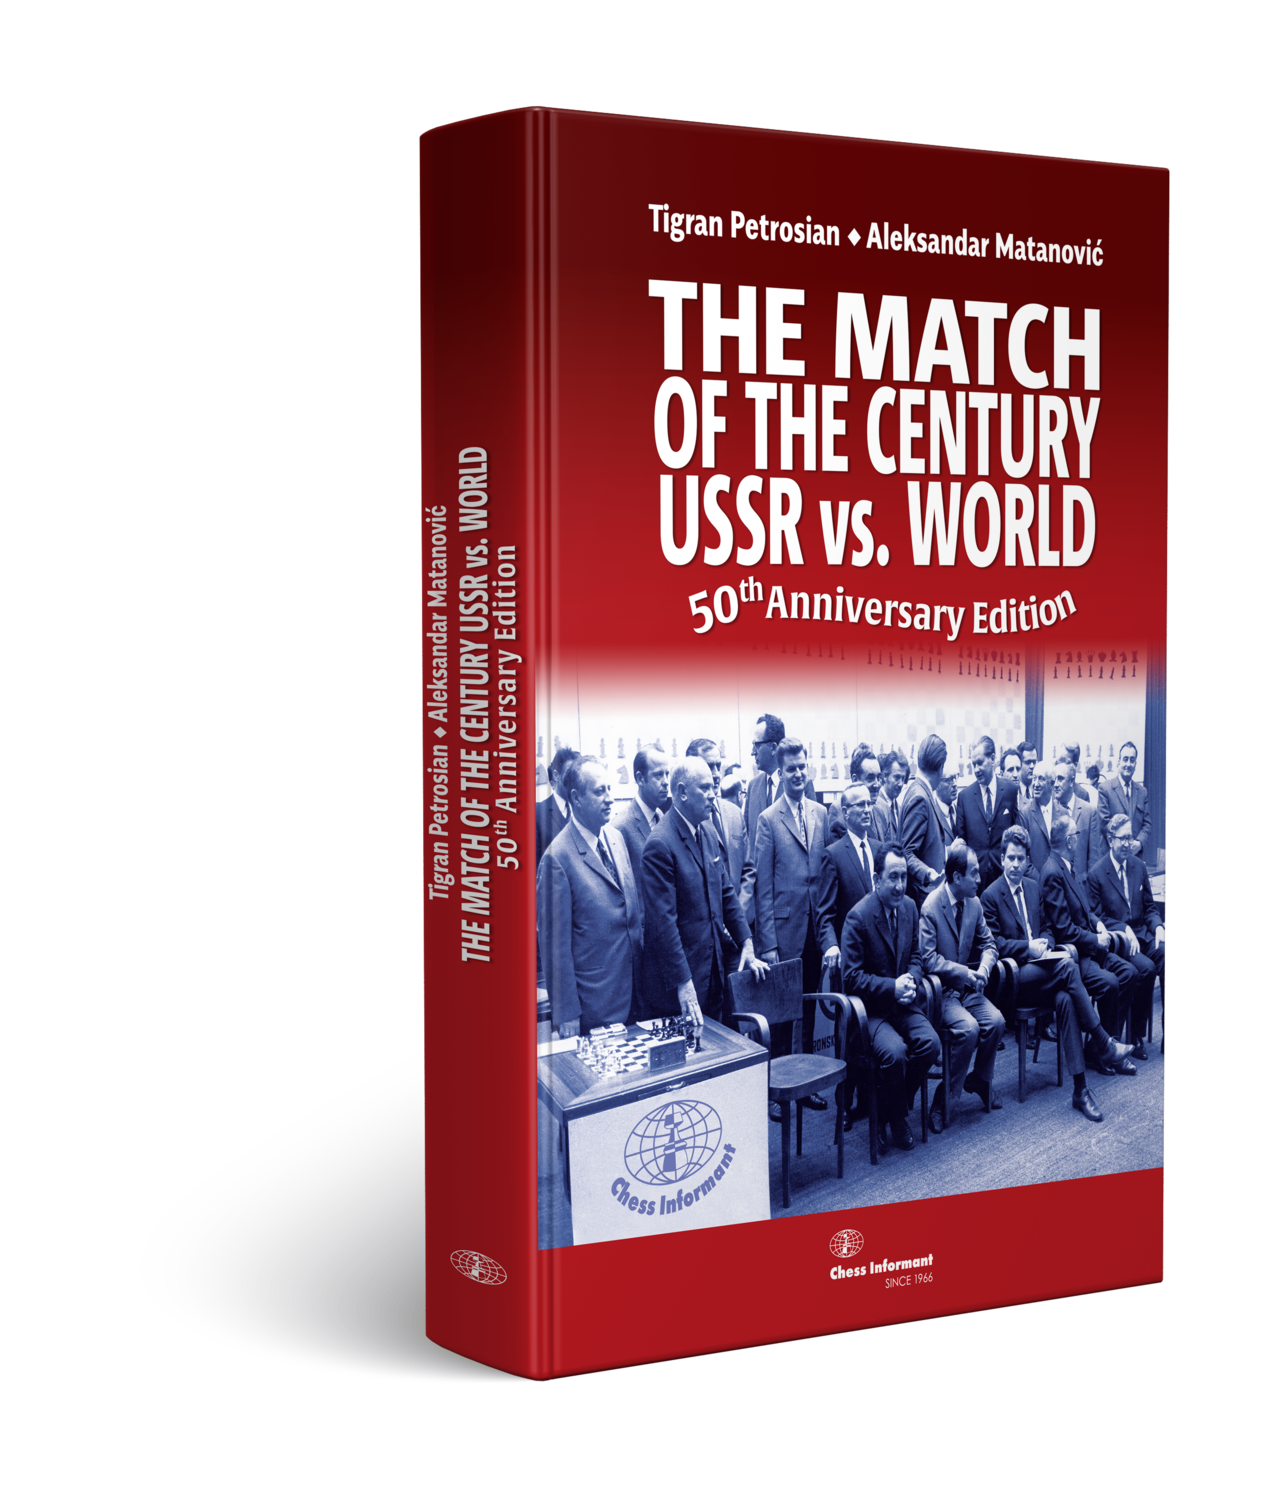 The Match of the Century - USSR vs. World